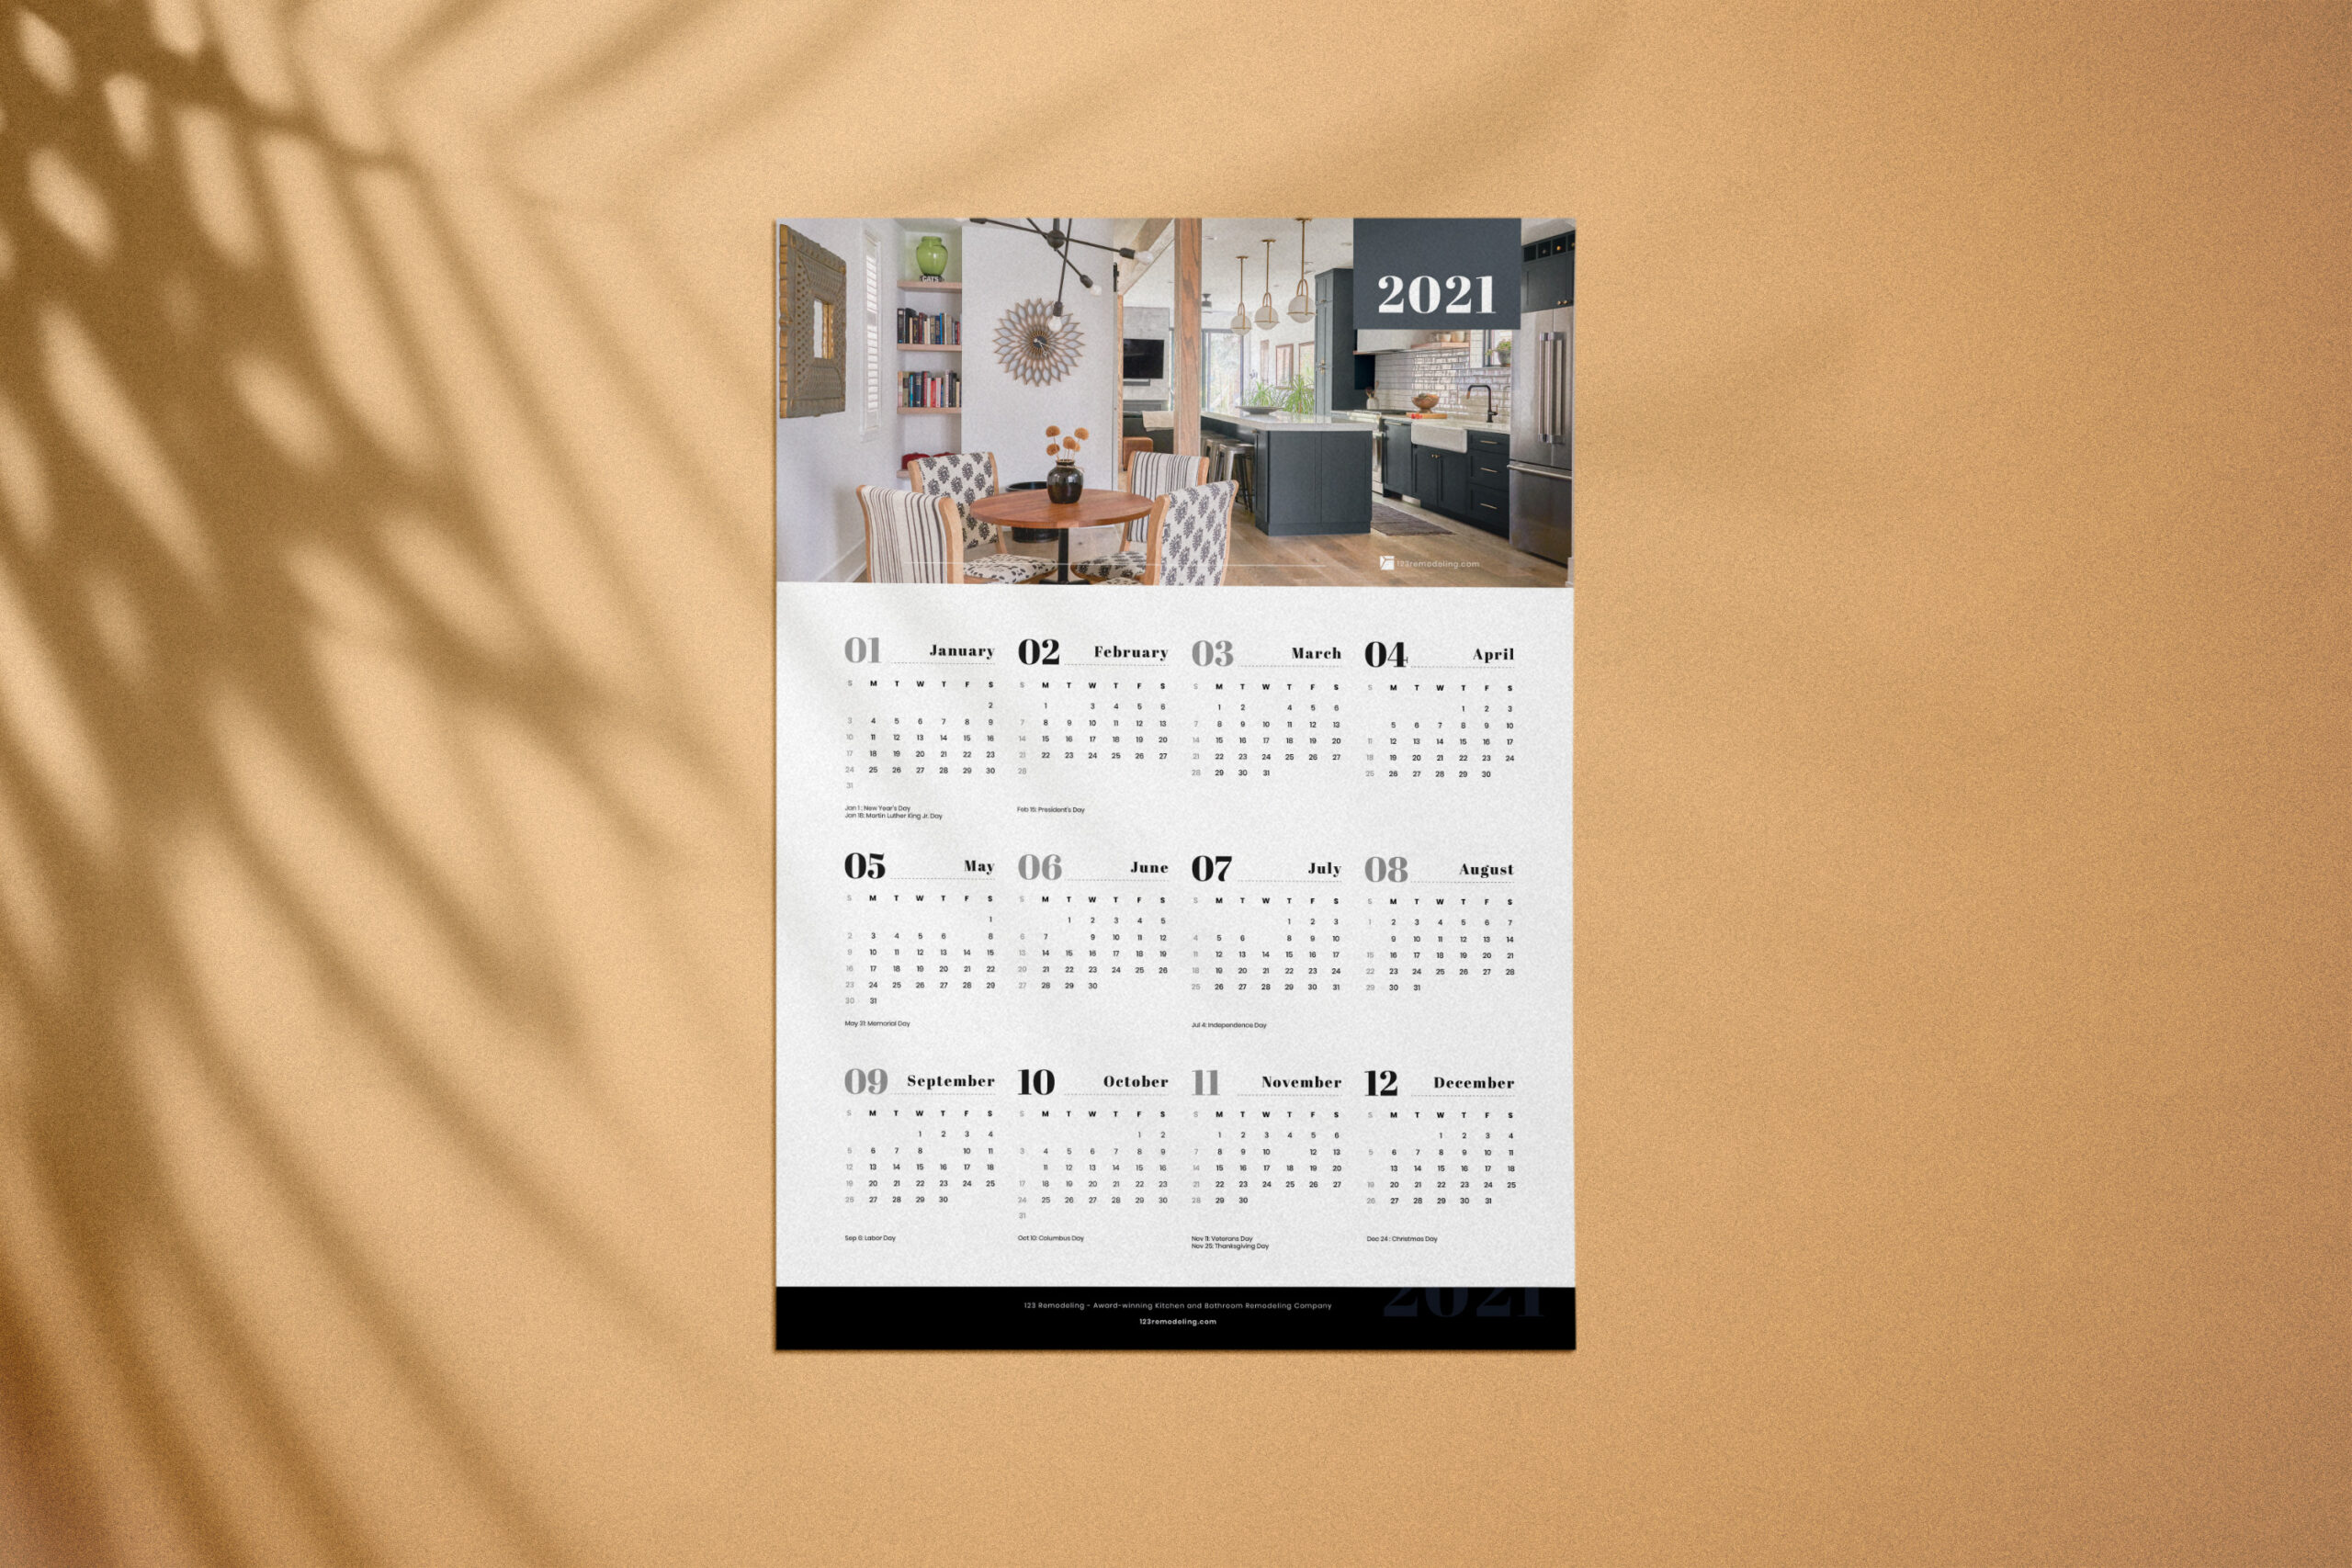 2021 Calendar by 123 Remodeling